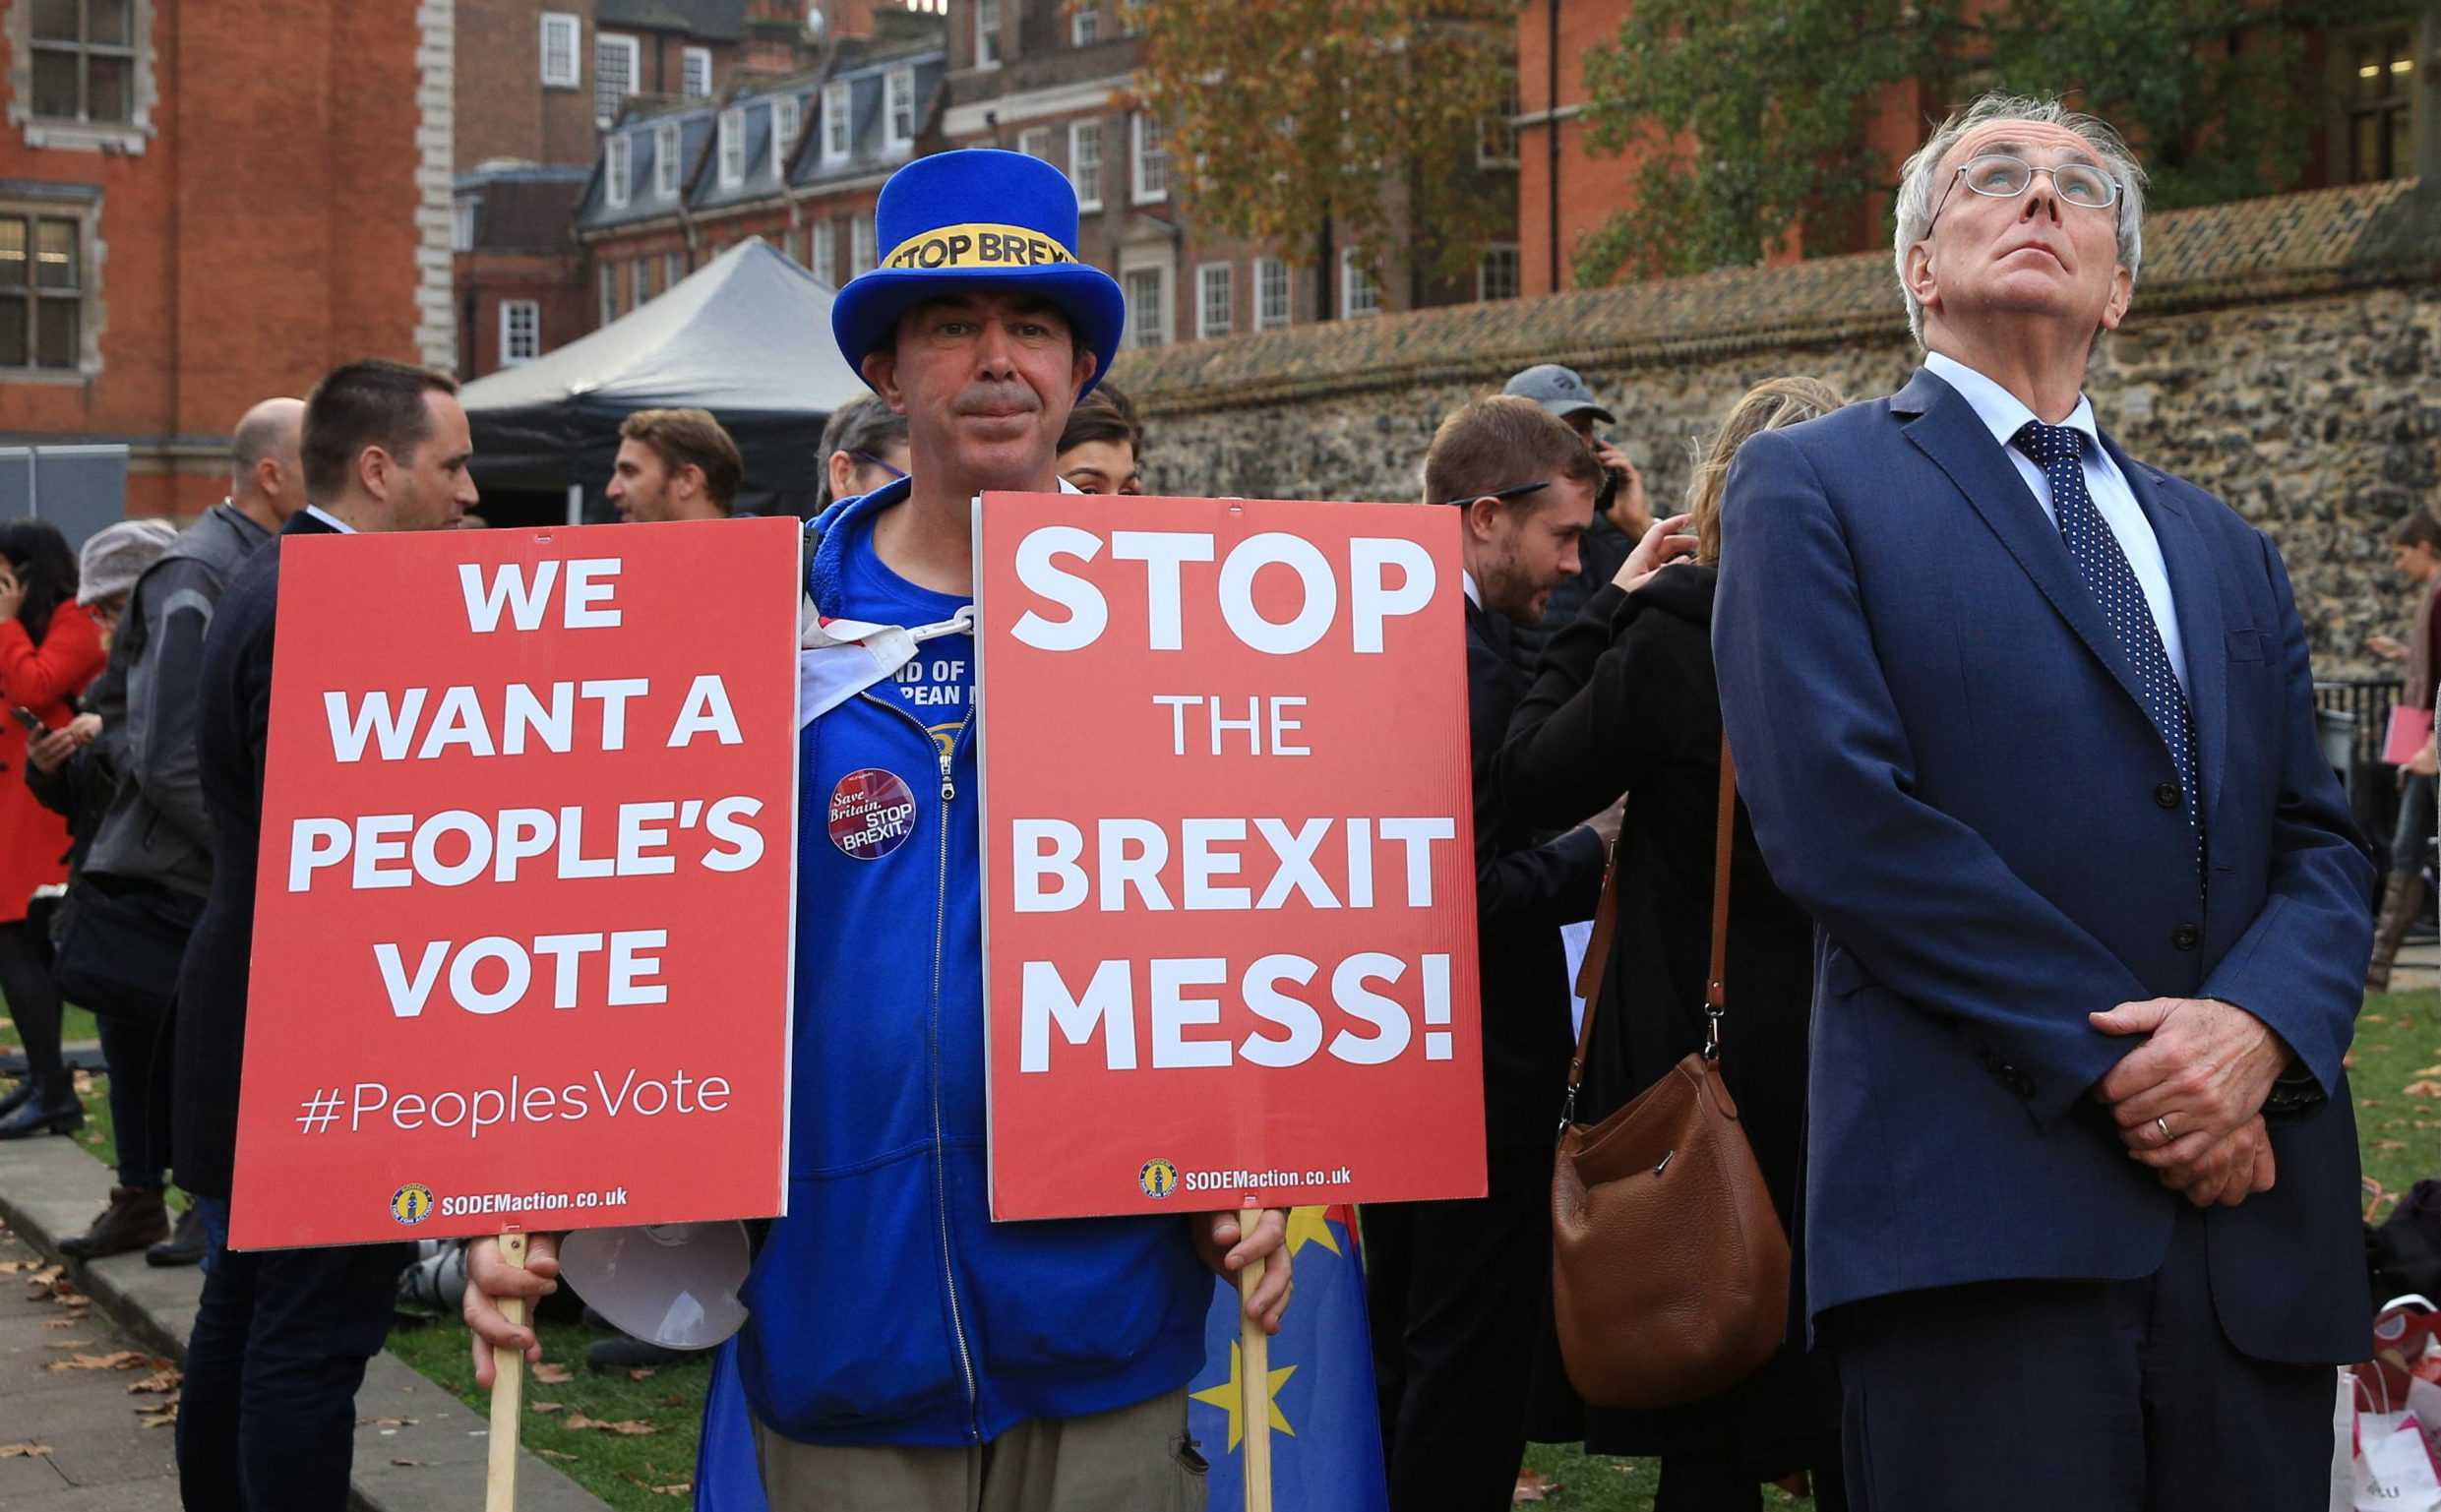 Mandatory Credit: Photo by Imageplotter/REX (9980700d) Peter Bone, MP in Westminster, with Anti-Brexit protester Steven Bray and his signs in the background. Brexit protest, London, UK - 15 Nov 2018